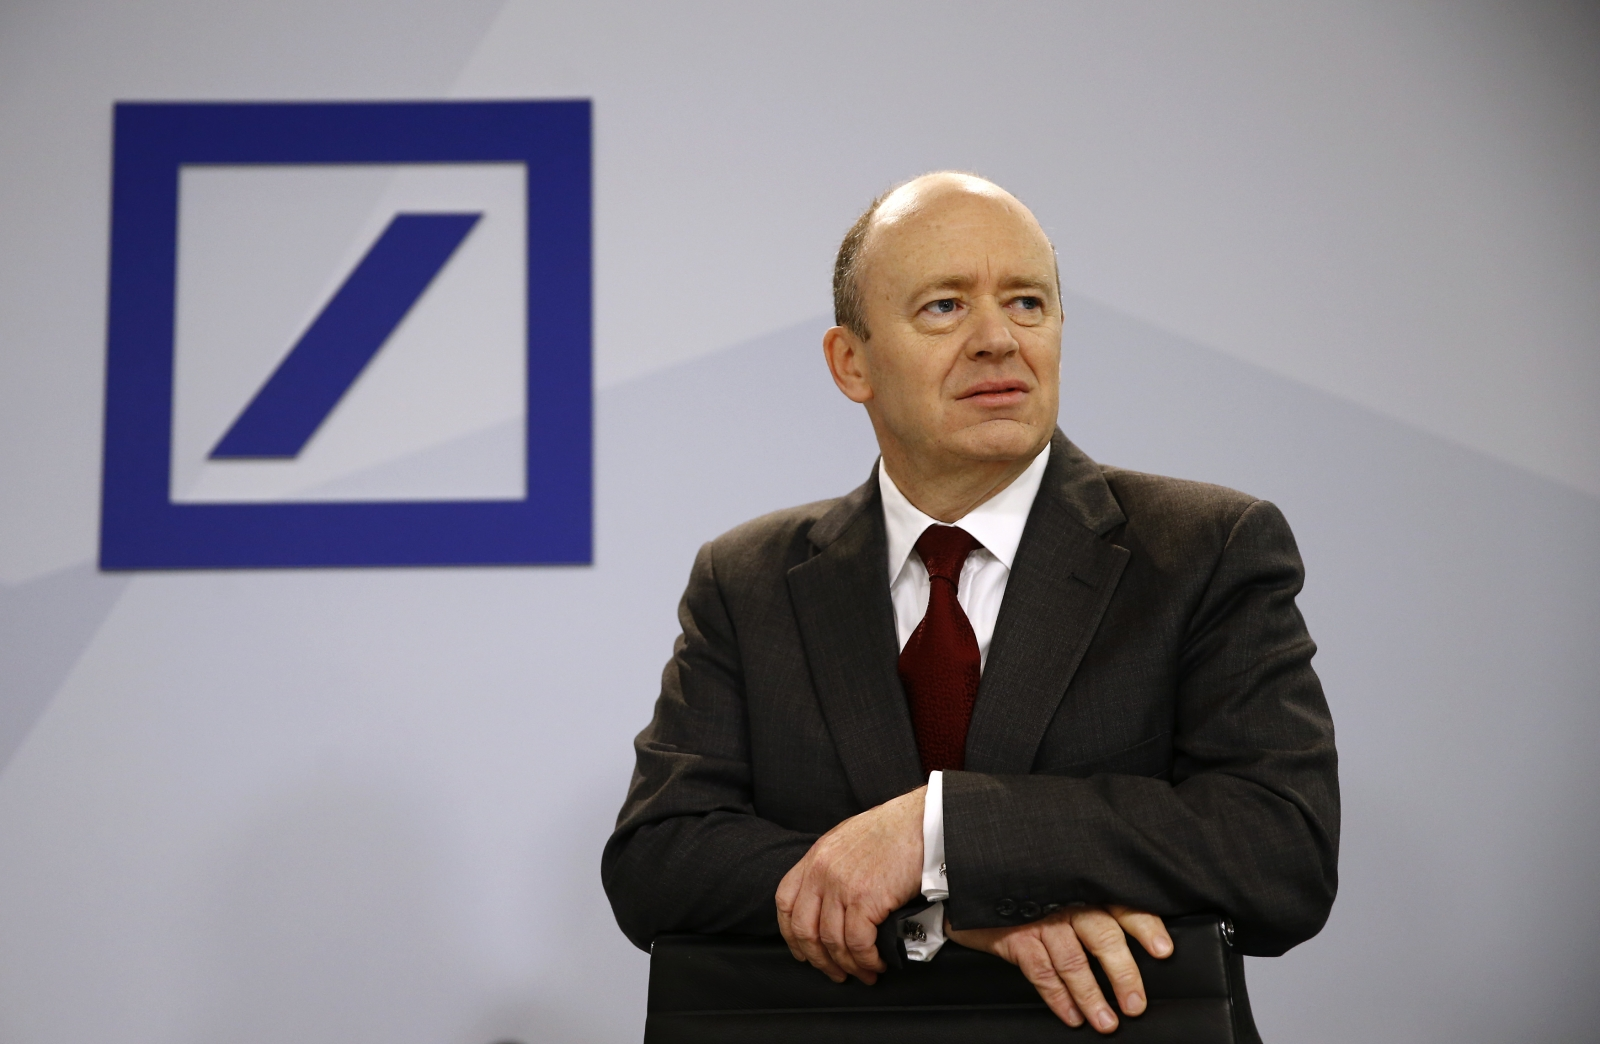 Deutsche Bank could undergo additional cost cuts after net income drops 98% on-year